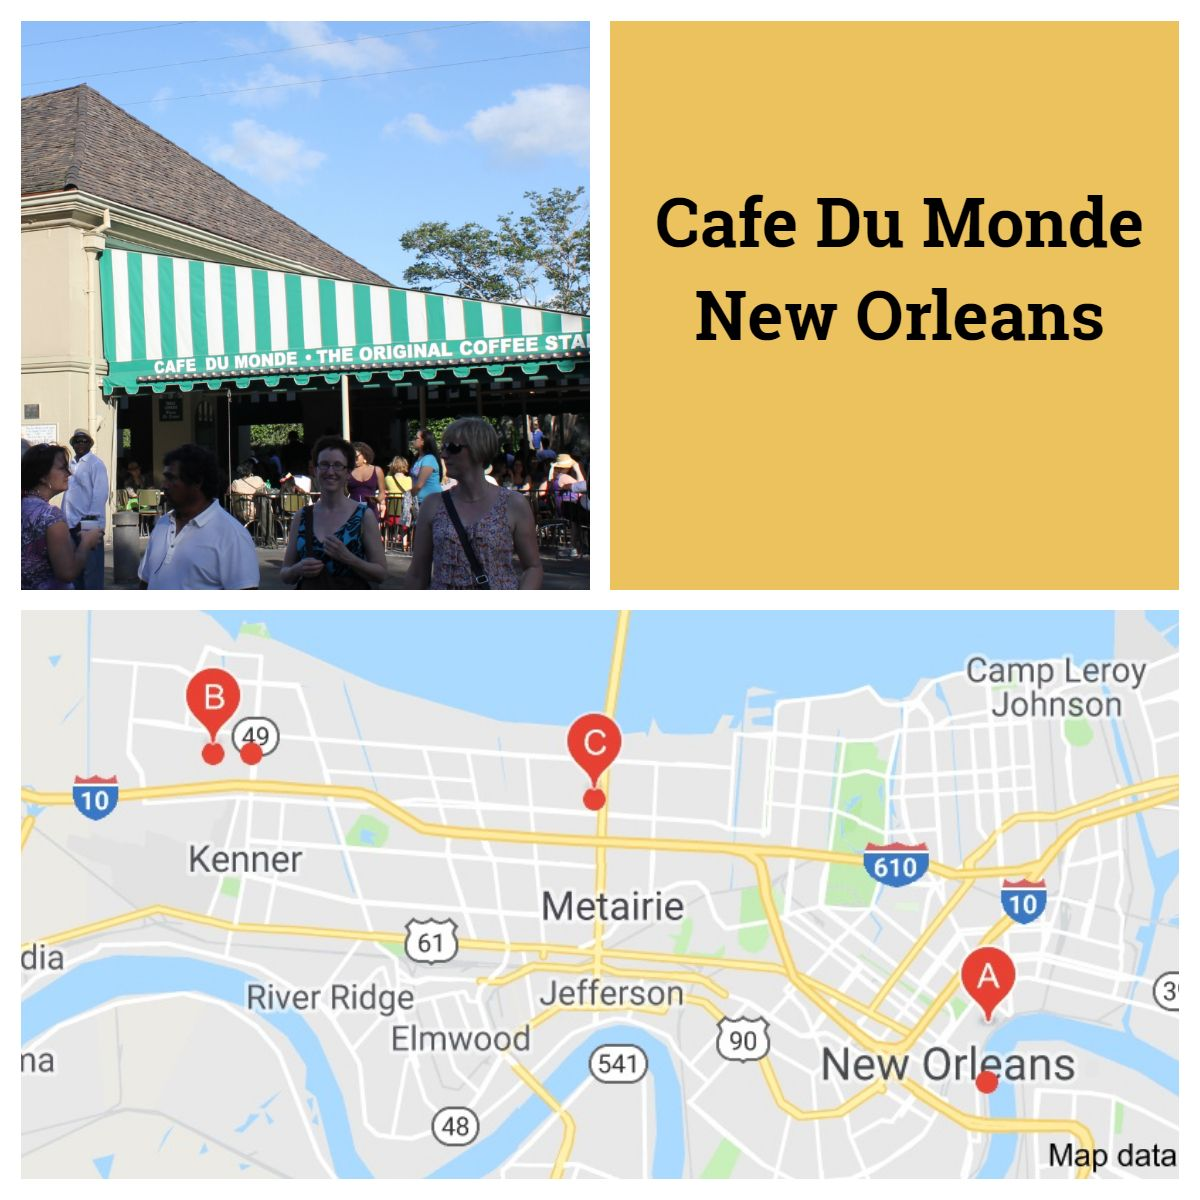 Cafe Du Monde Cafe Du Monde Road Trip Fun Cafe Du Monde Coffee